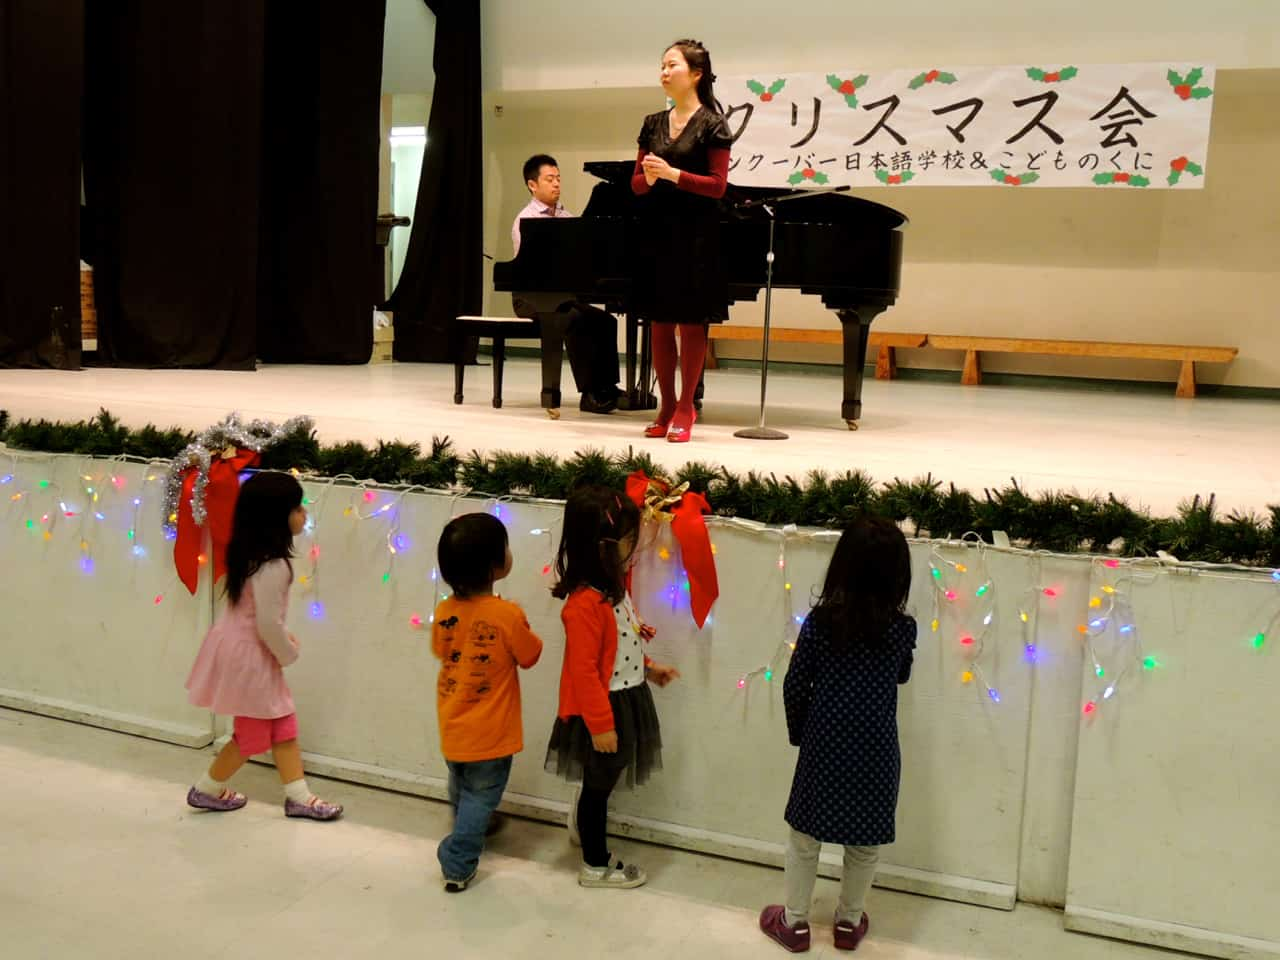 Kids were excited by their teacher's performance・先生の歌声に子供達は釘付け